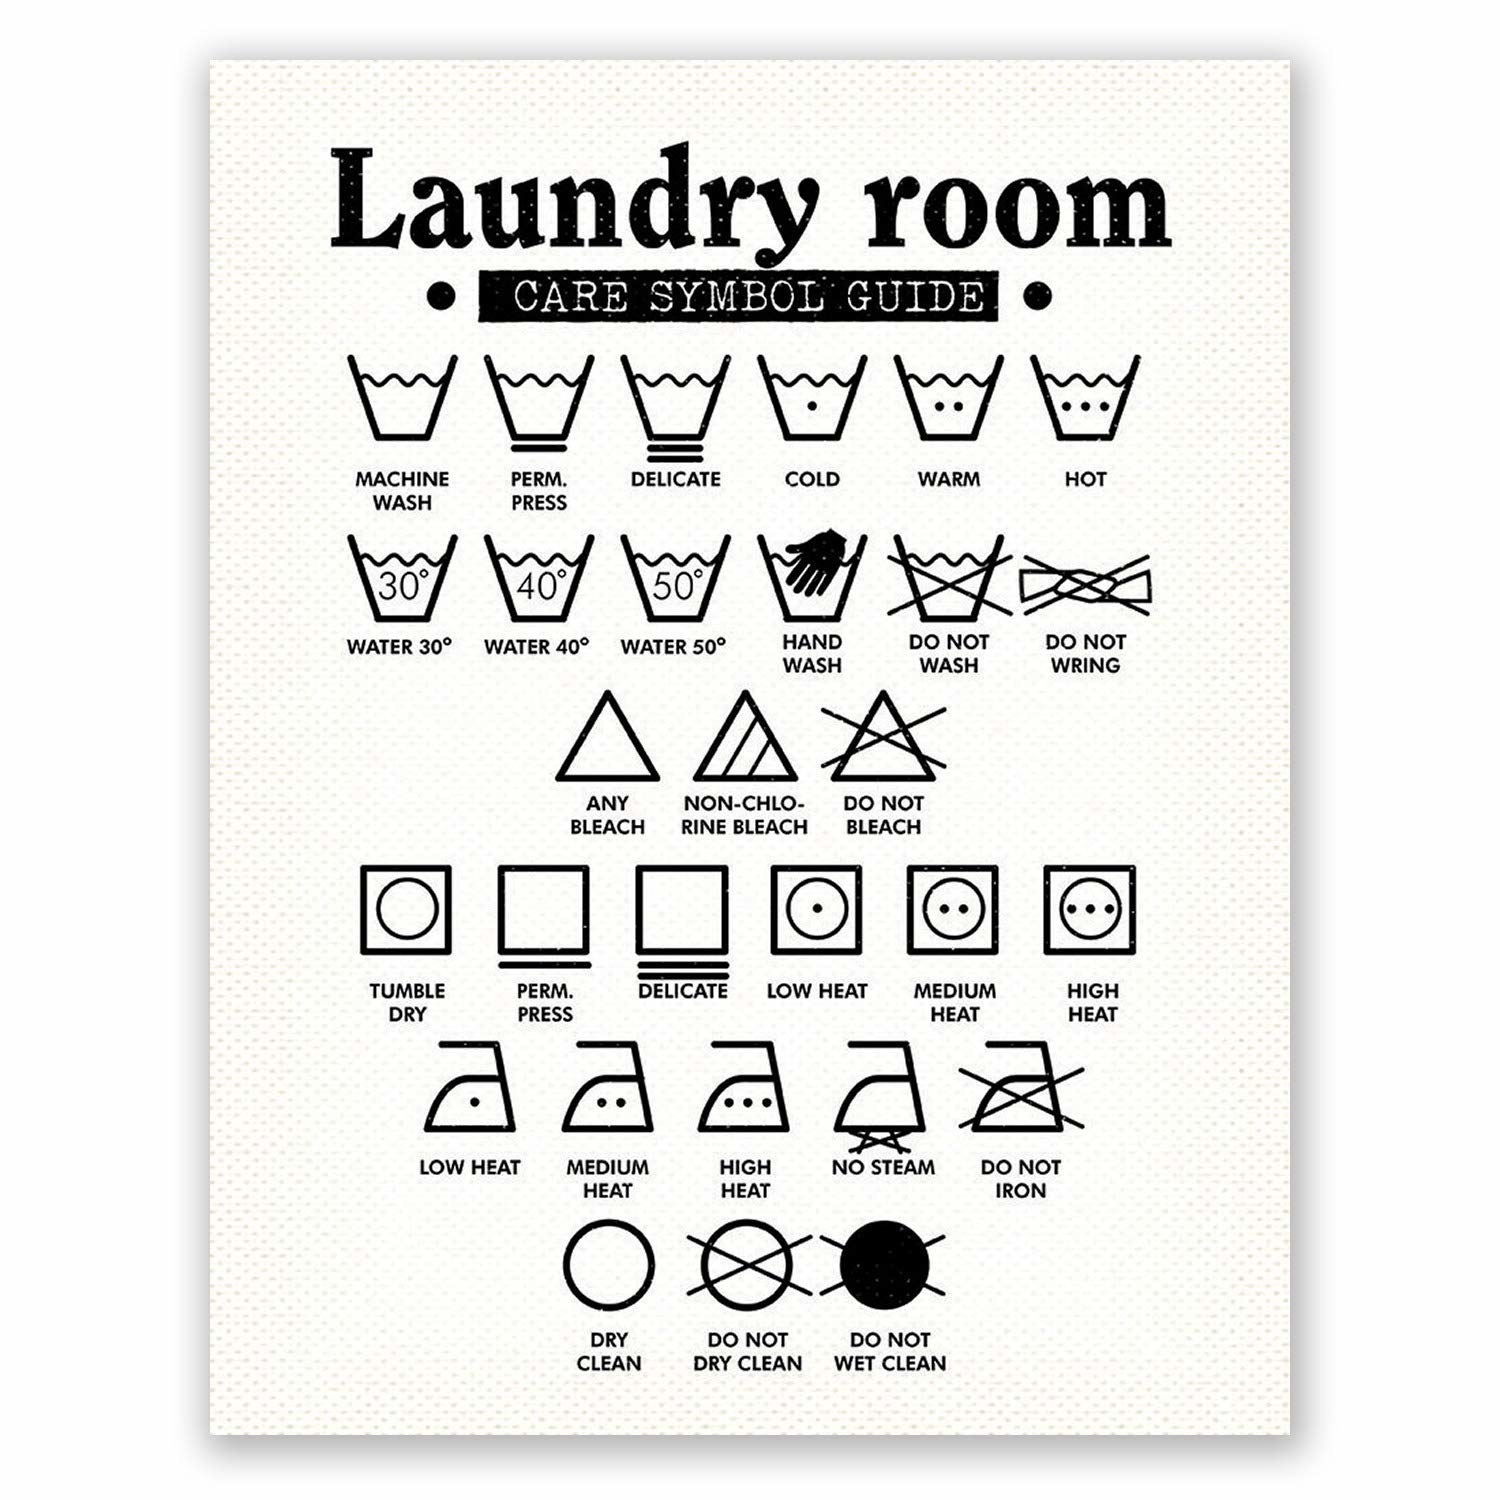 The symbol guide with a variety of different laundry symbols and what they mean